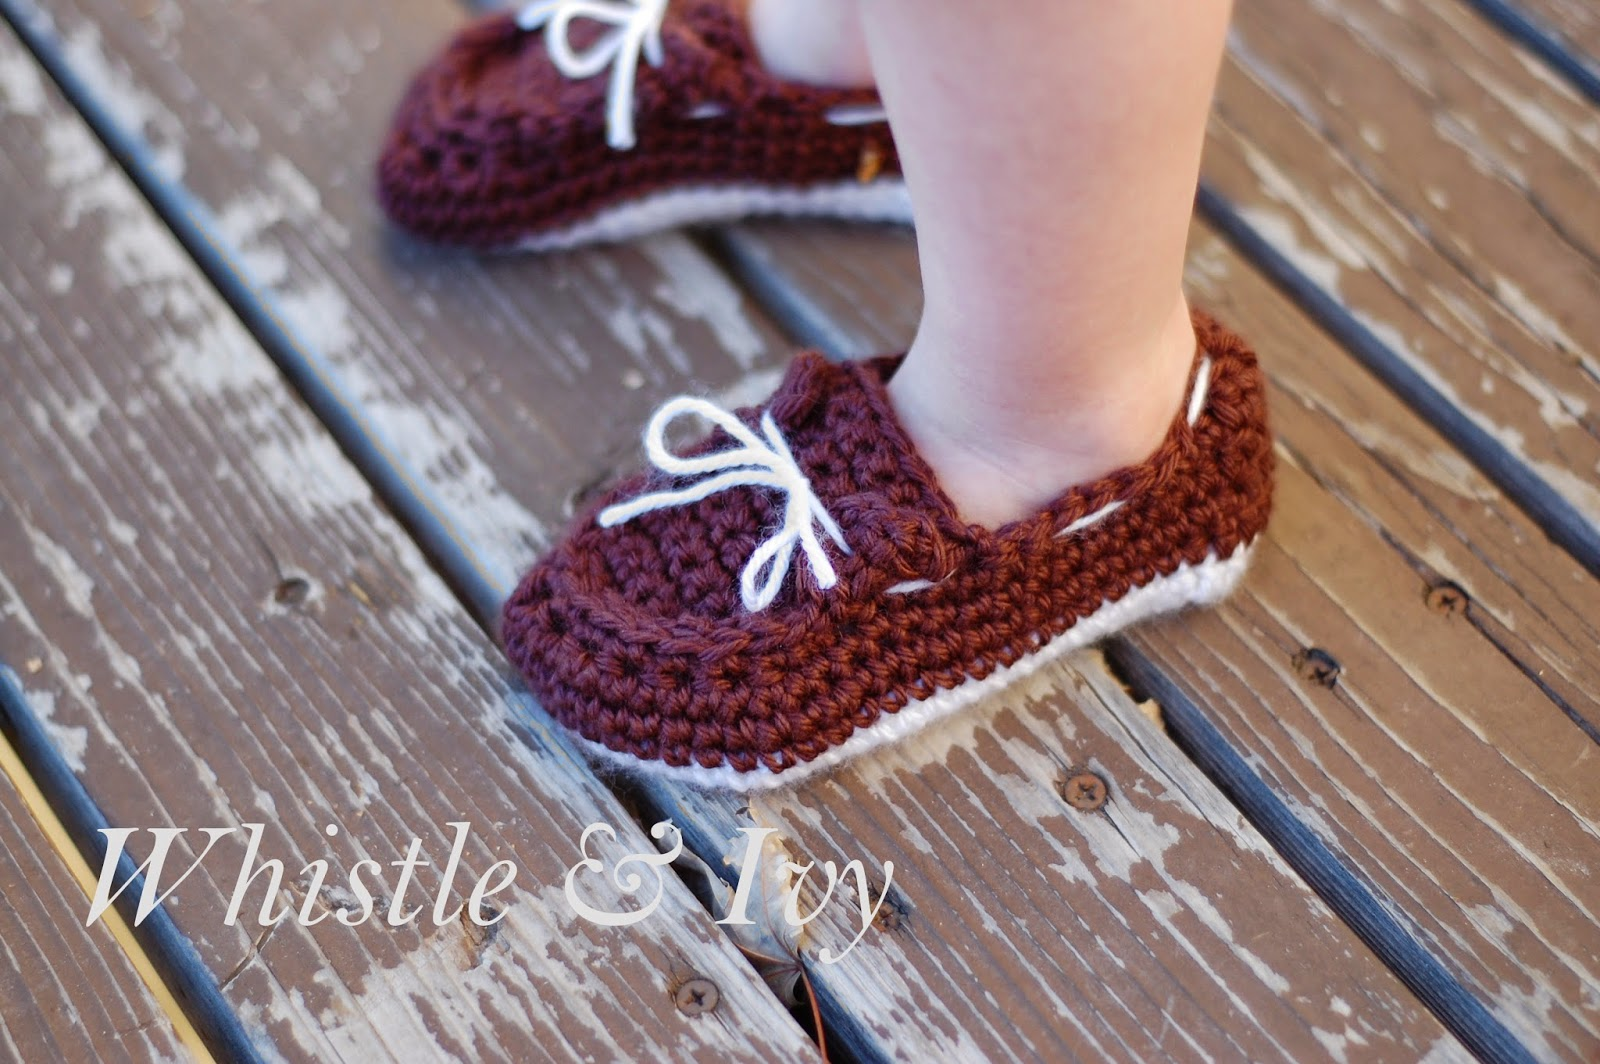 Crochet Pattern For Baby Boat Shoes : Toddler Boat Slippers Crochet Pattern - Whistle and Ivy